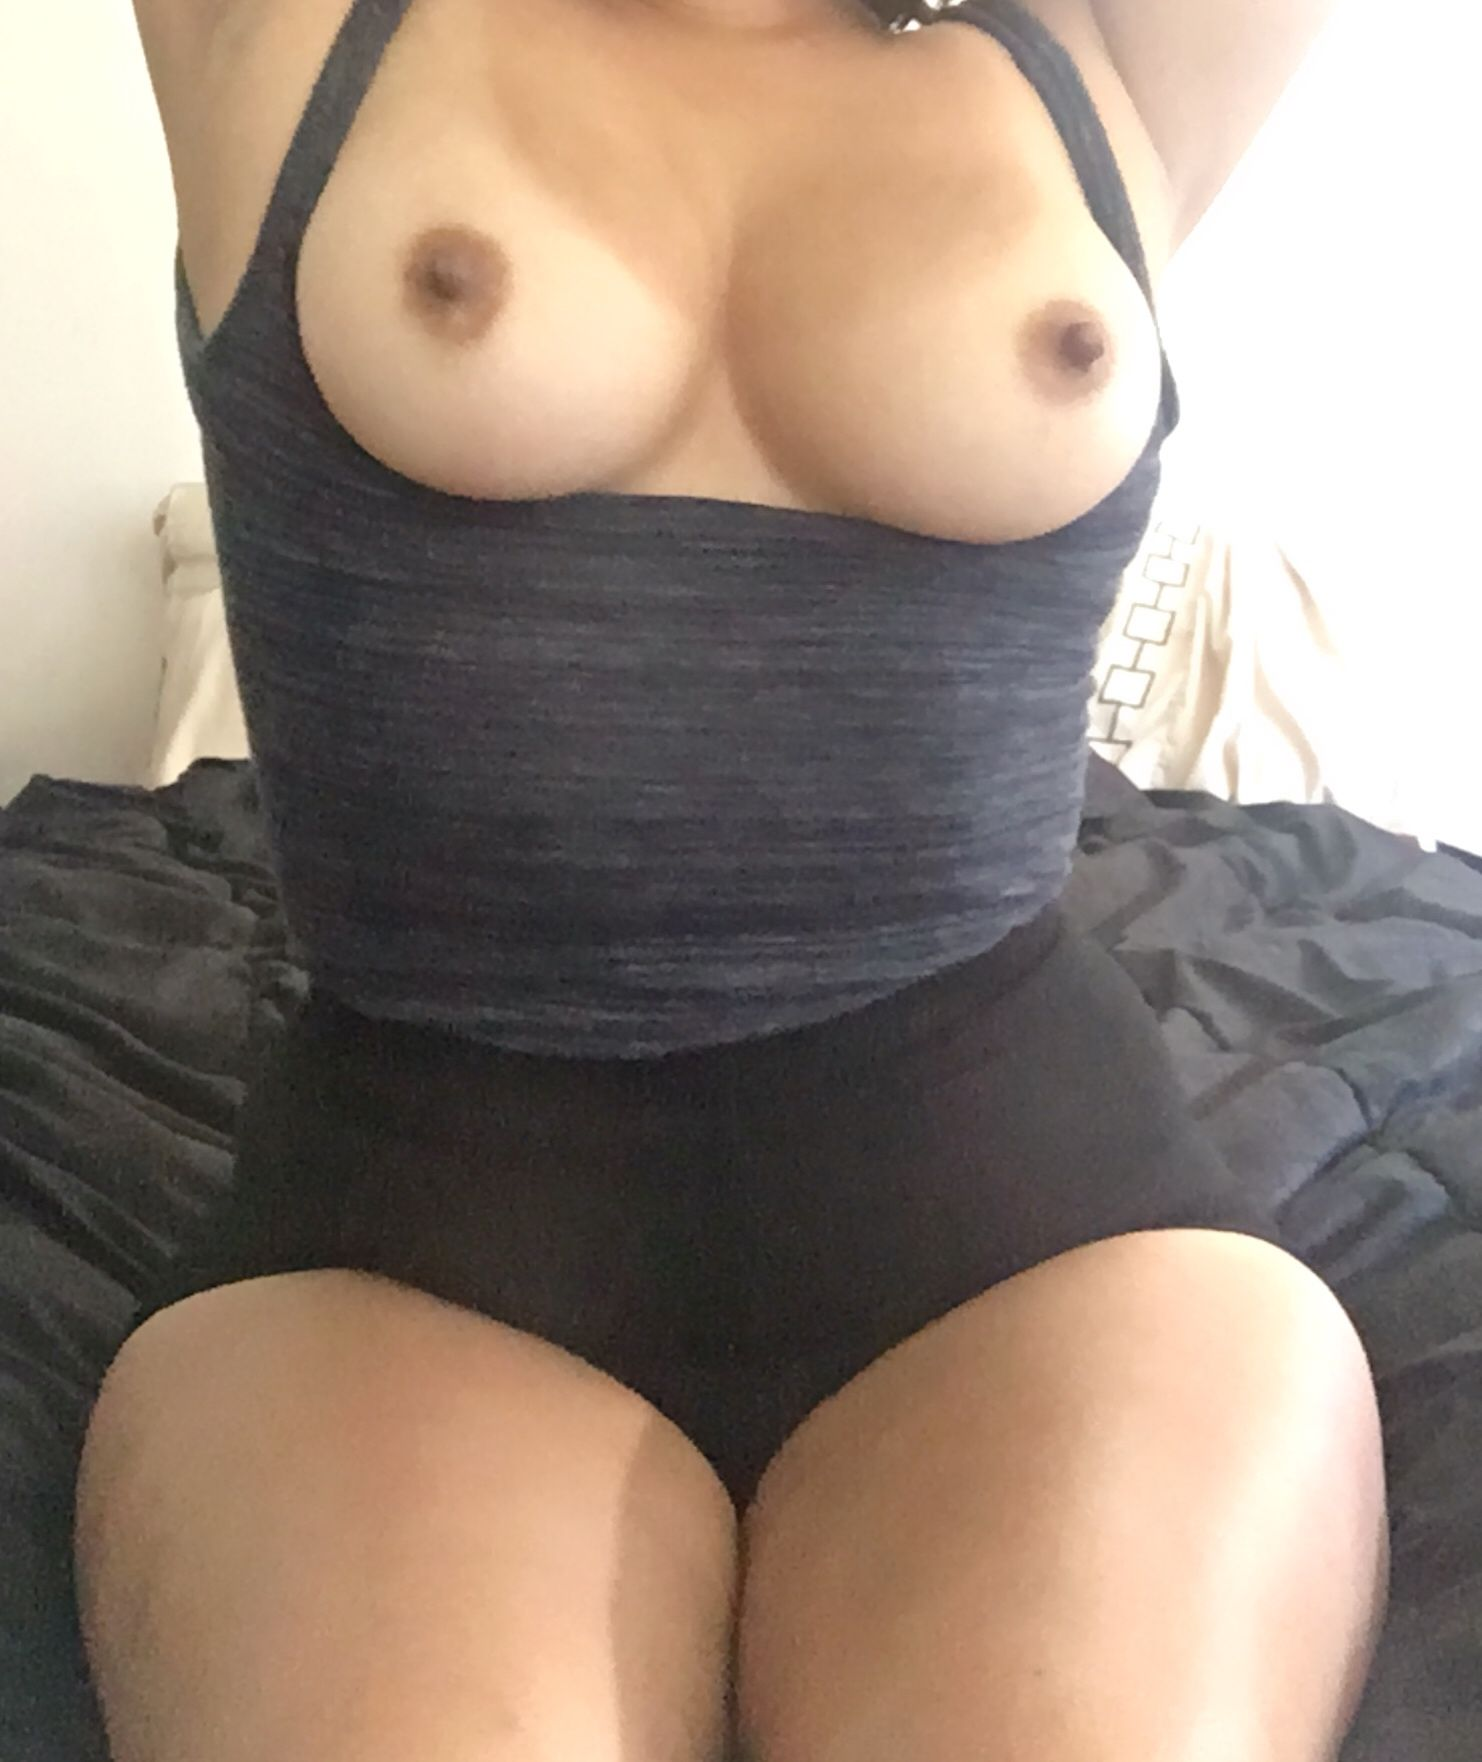 [Curvy Amateurs] Do you like this pose?